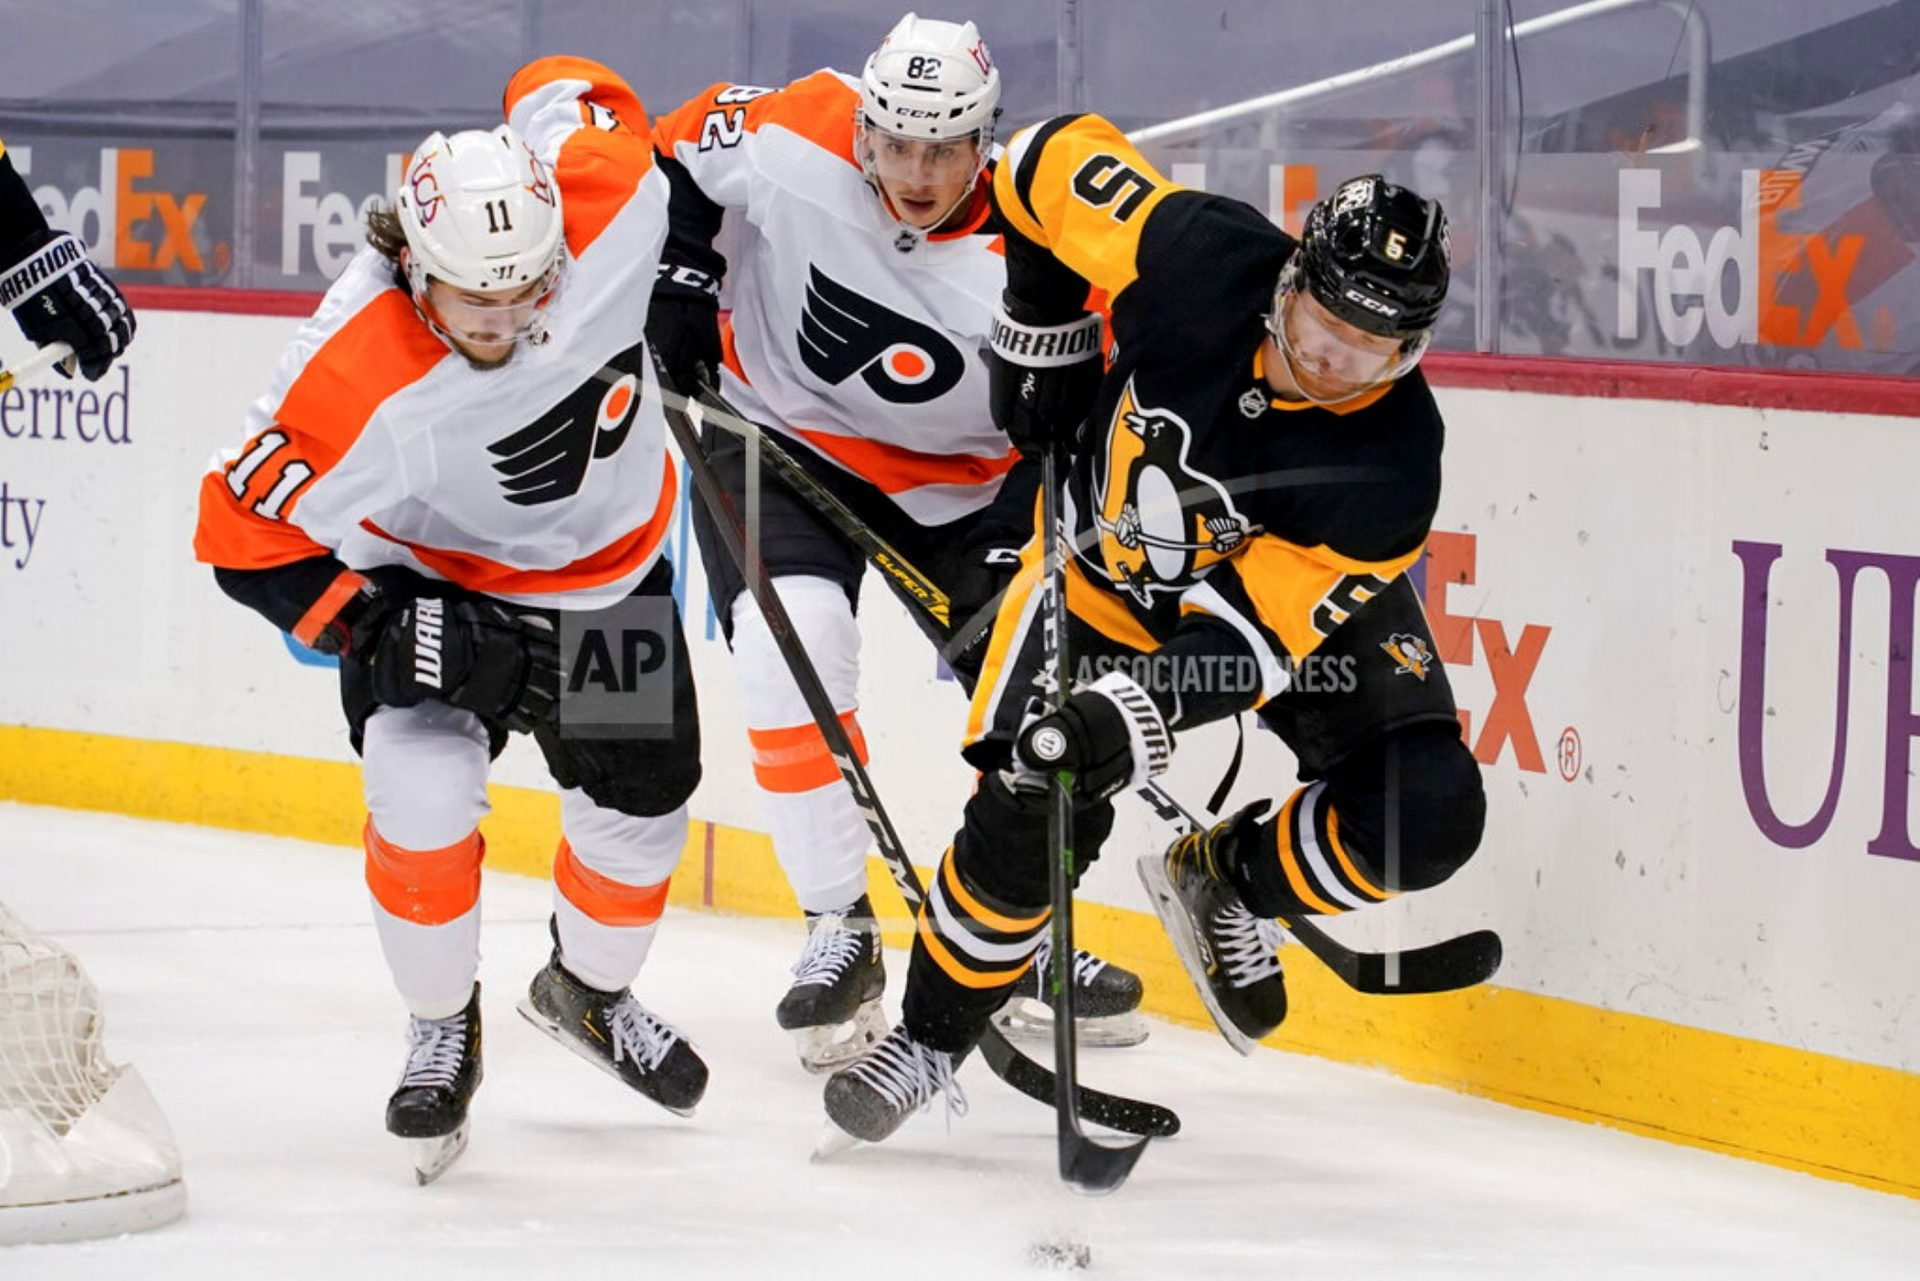 Pittsburgh Penguins' Mike Matheson (5) tries to control the puck as Philadelphia Flyers' Travis Konecny (11) and Connor Bunnaman (82) pursue during the second period of an NHL hockey game, Tuesday, March 2, 2021, in Pittsburgh.